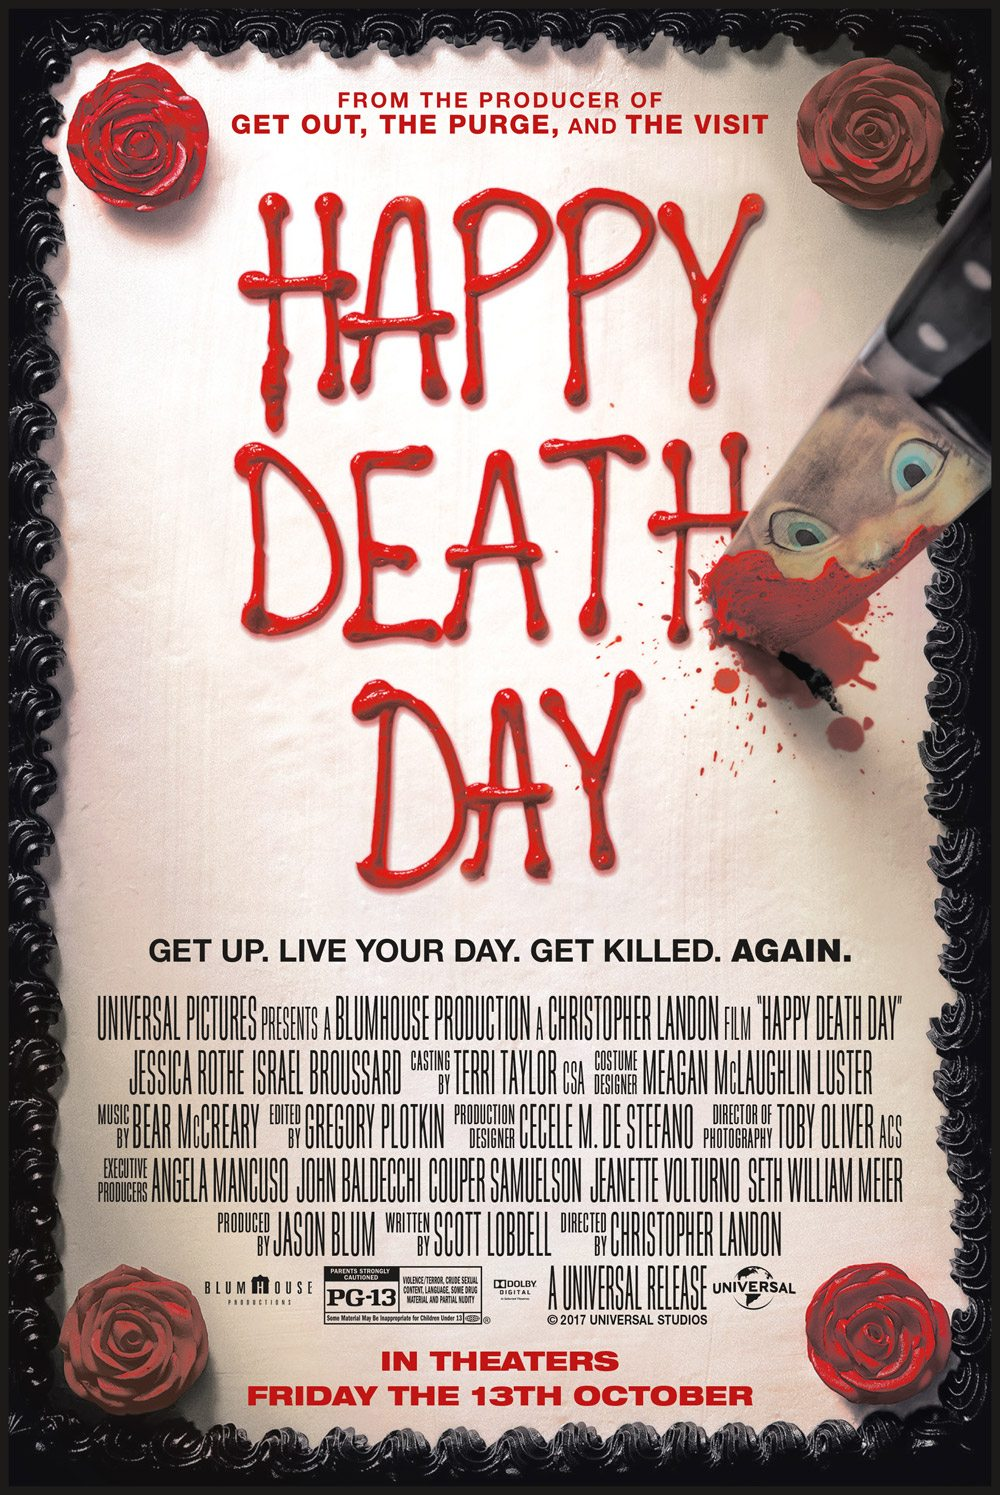 6. Happy Death Day (2017) - Described as Groundhog's Day meets Scream, this twist on the slasher genre turns its slutty sorority sister into a bad ass final girl. Full of charm and smarts, this slasher brings a new slasher trope to get behind, #GroundhogHorror.